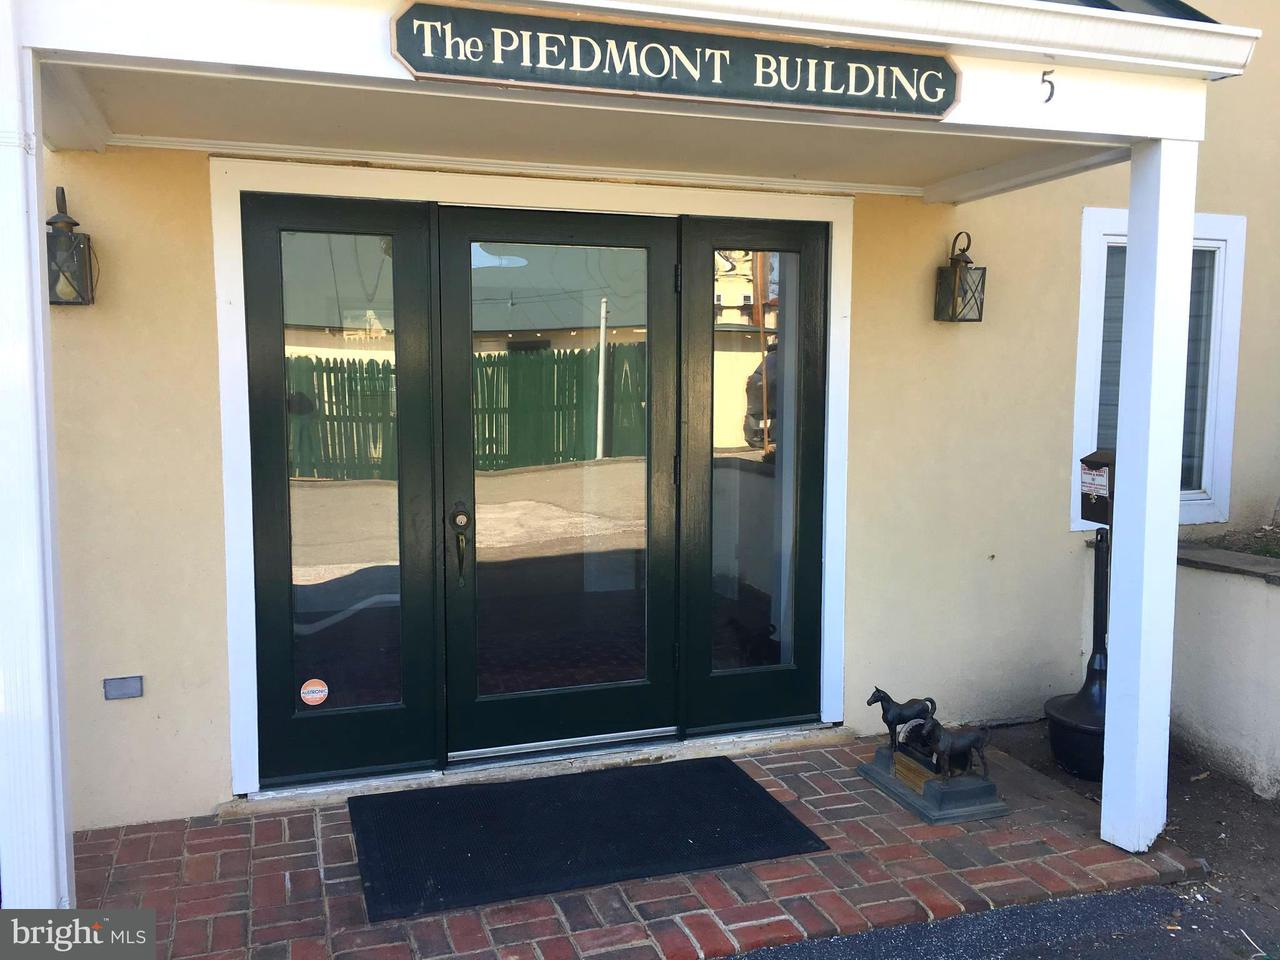 Other Residential for Rent at 5 Federal St Middleburg, Virginia 20117 United States